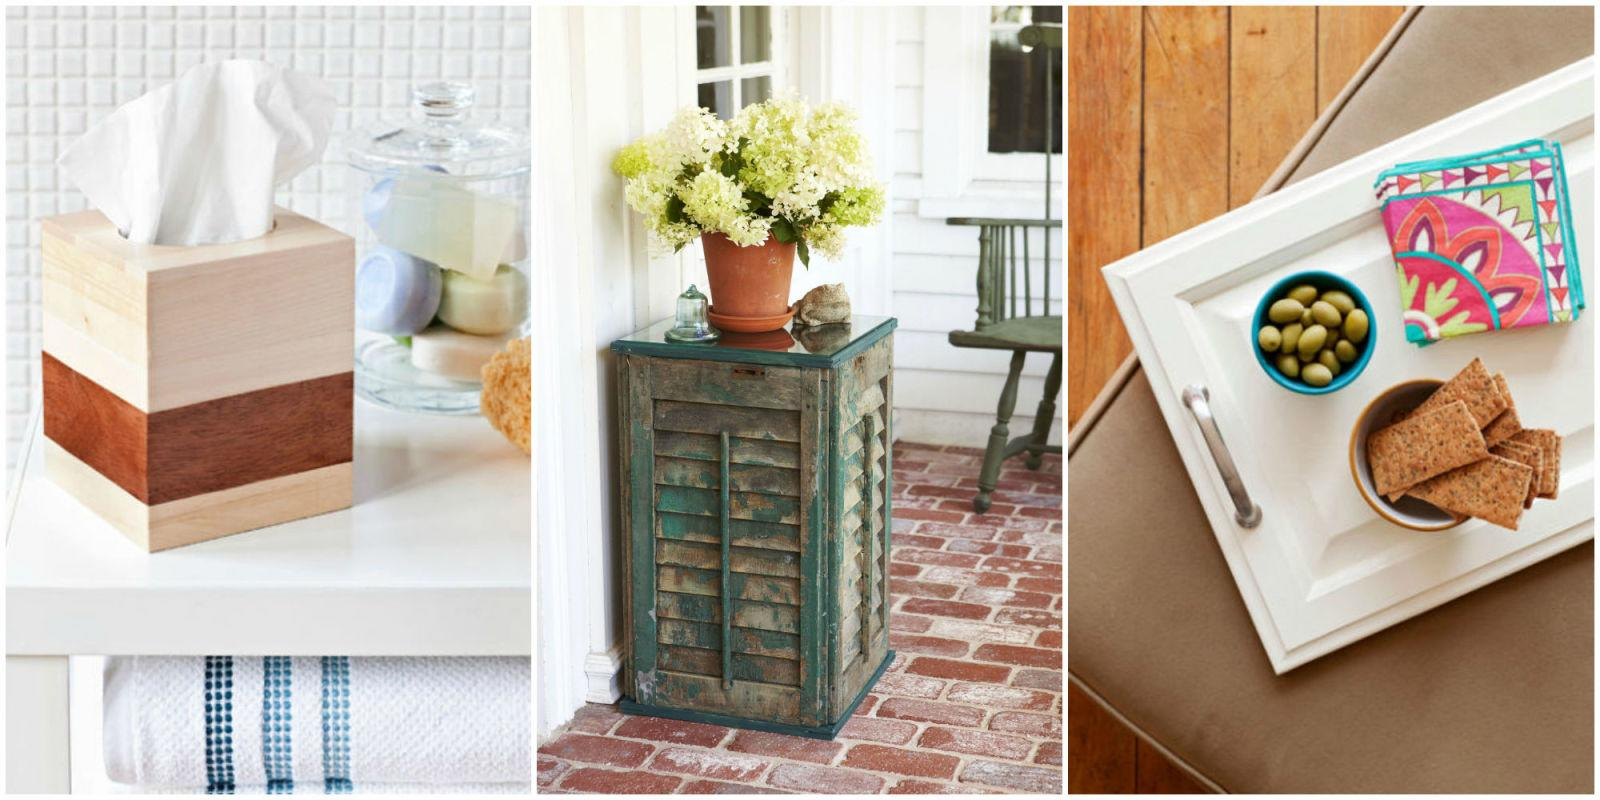 20 Diy Home Decor Projects For A Prettier Space